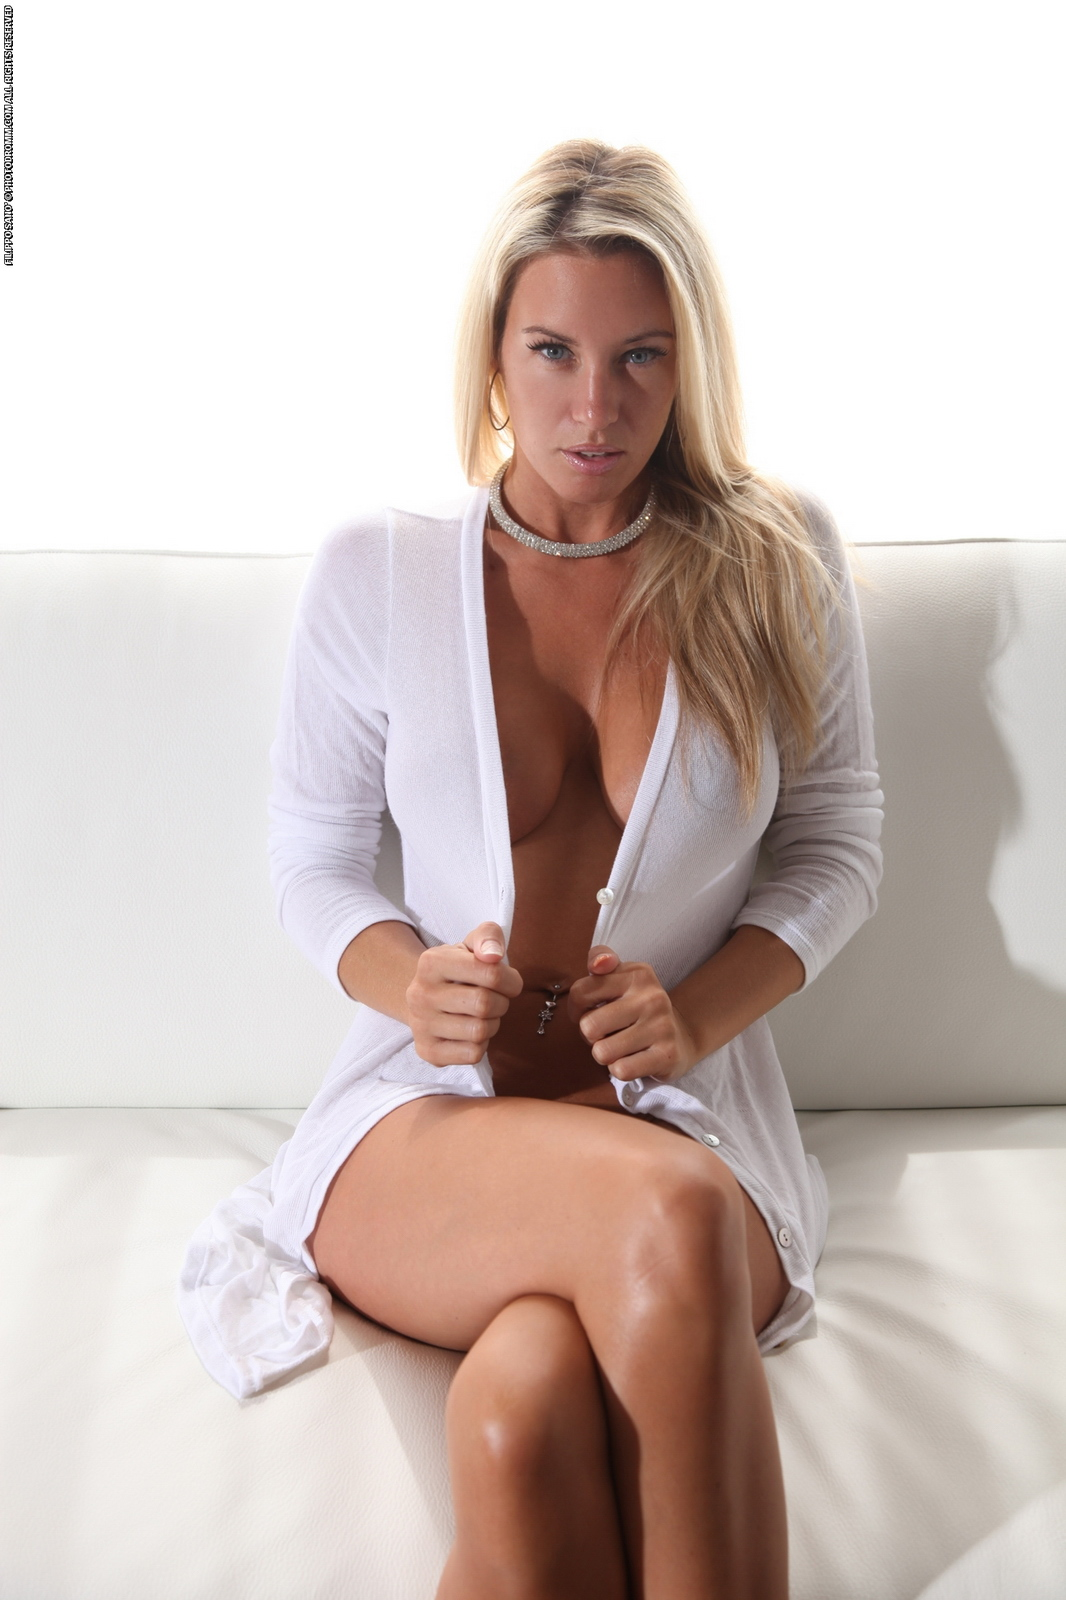 janine-naked-on-couch-busty-blonde-photodromm-02